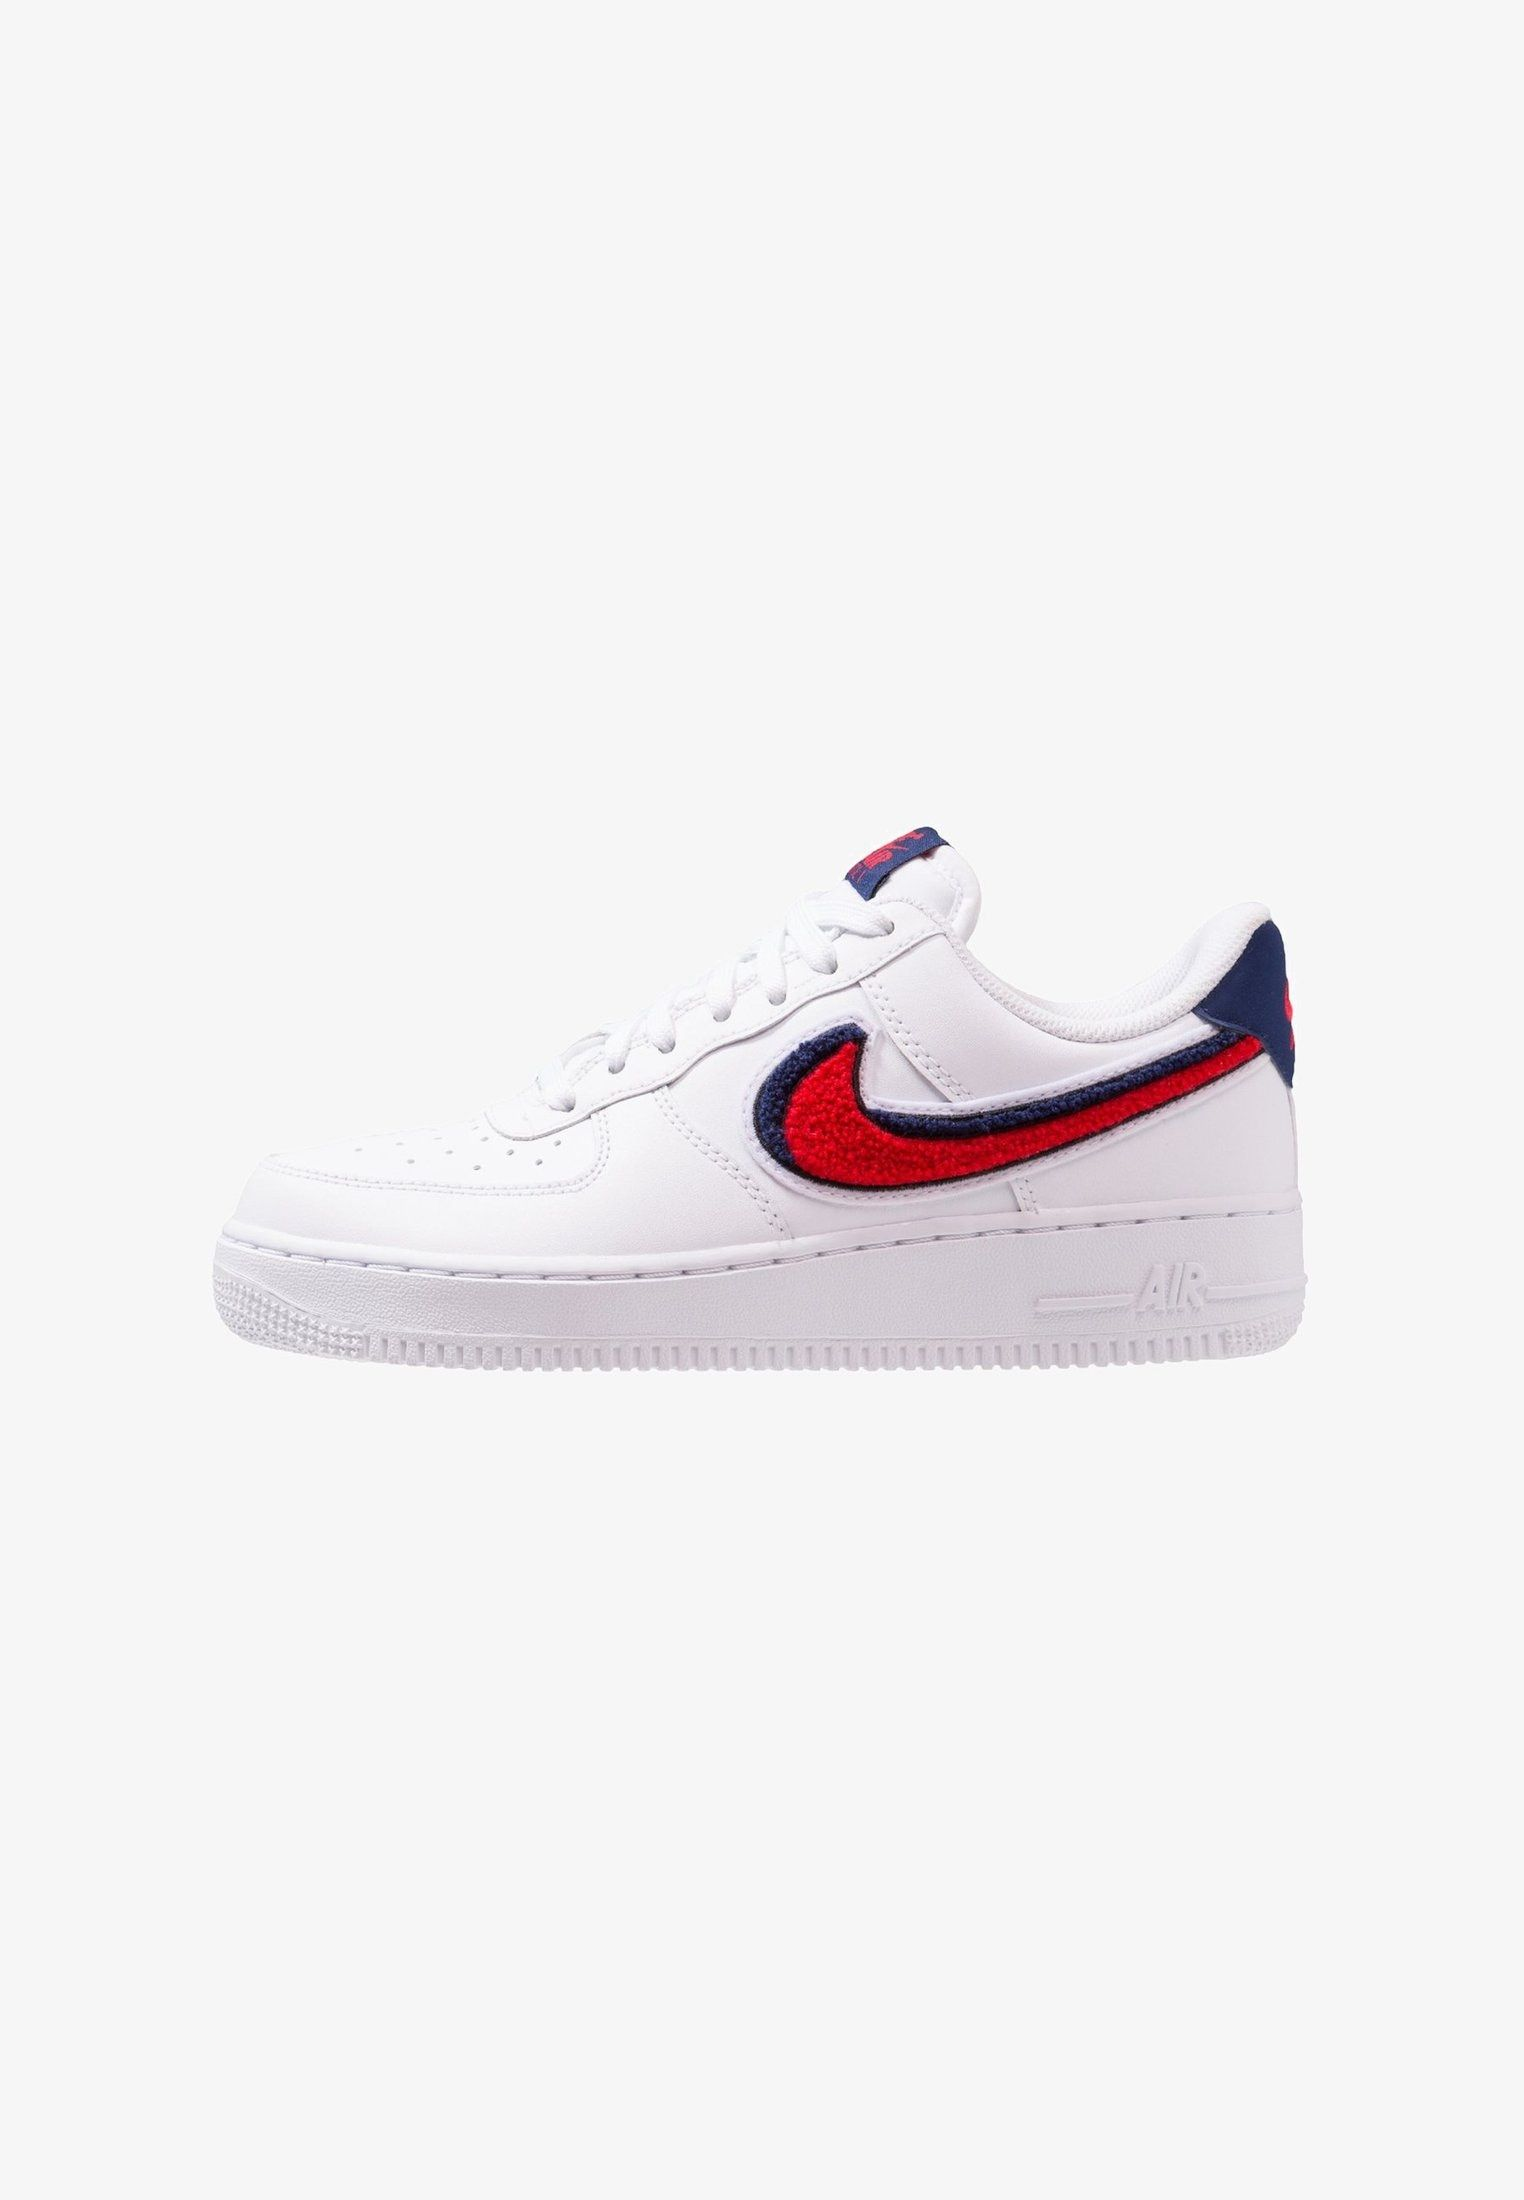 new styles 55444 23e53 Nike Sportswear AIR FORCE 1  07 LV8 - Baskets basses - white univ red blue  void - ZALANDO.FR